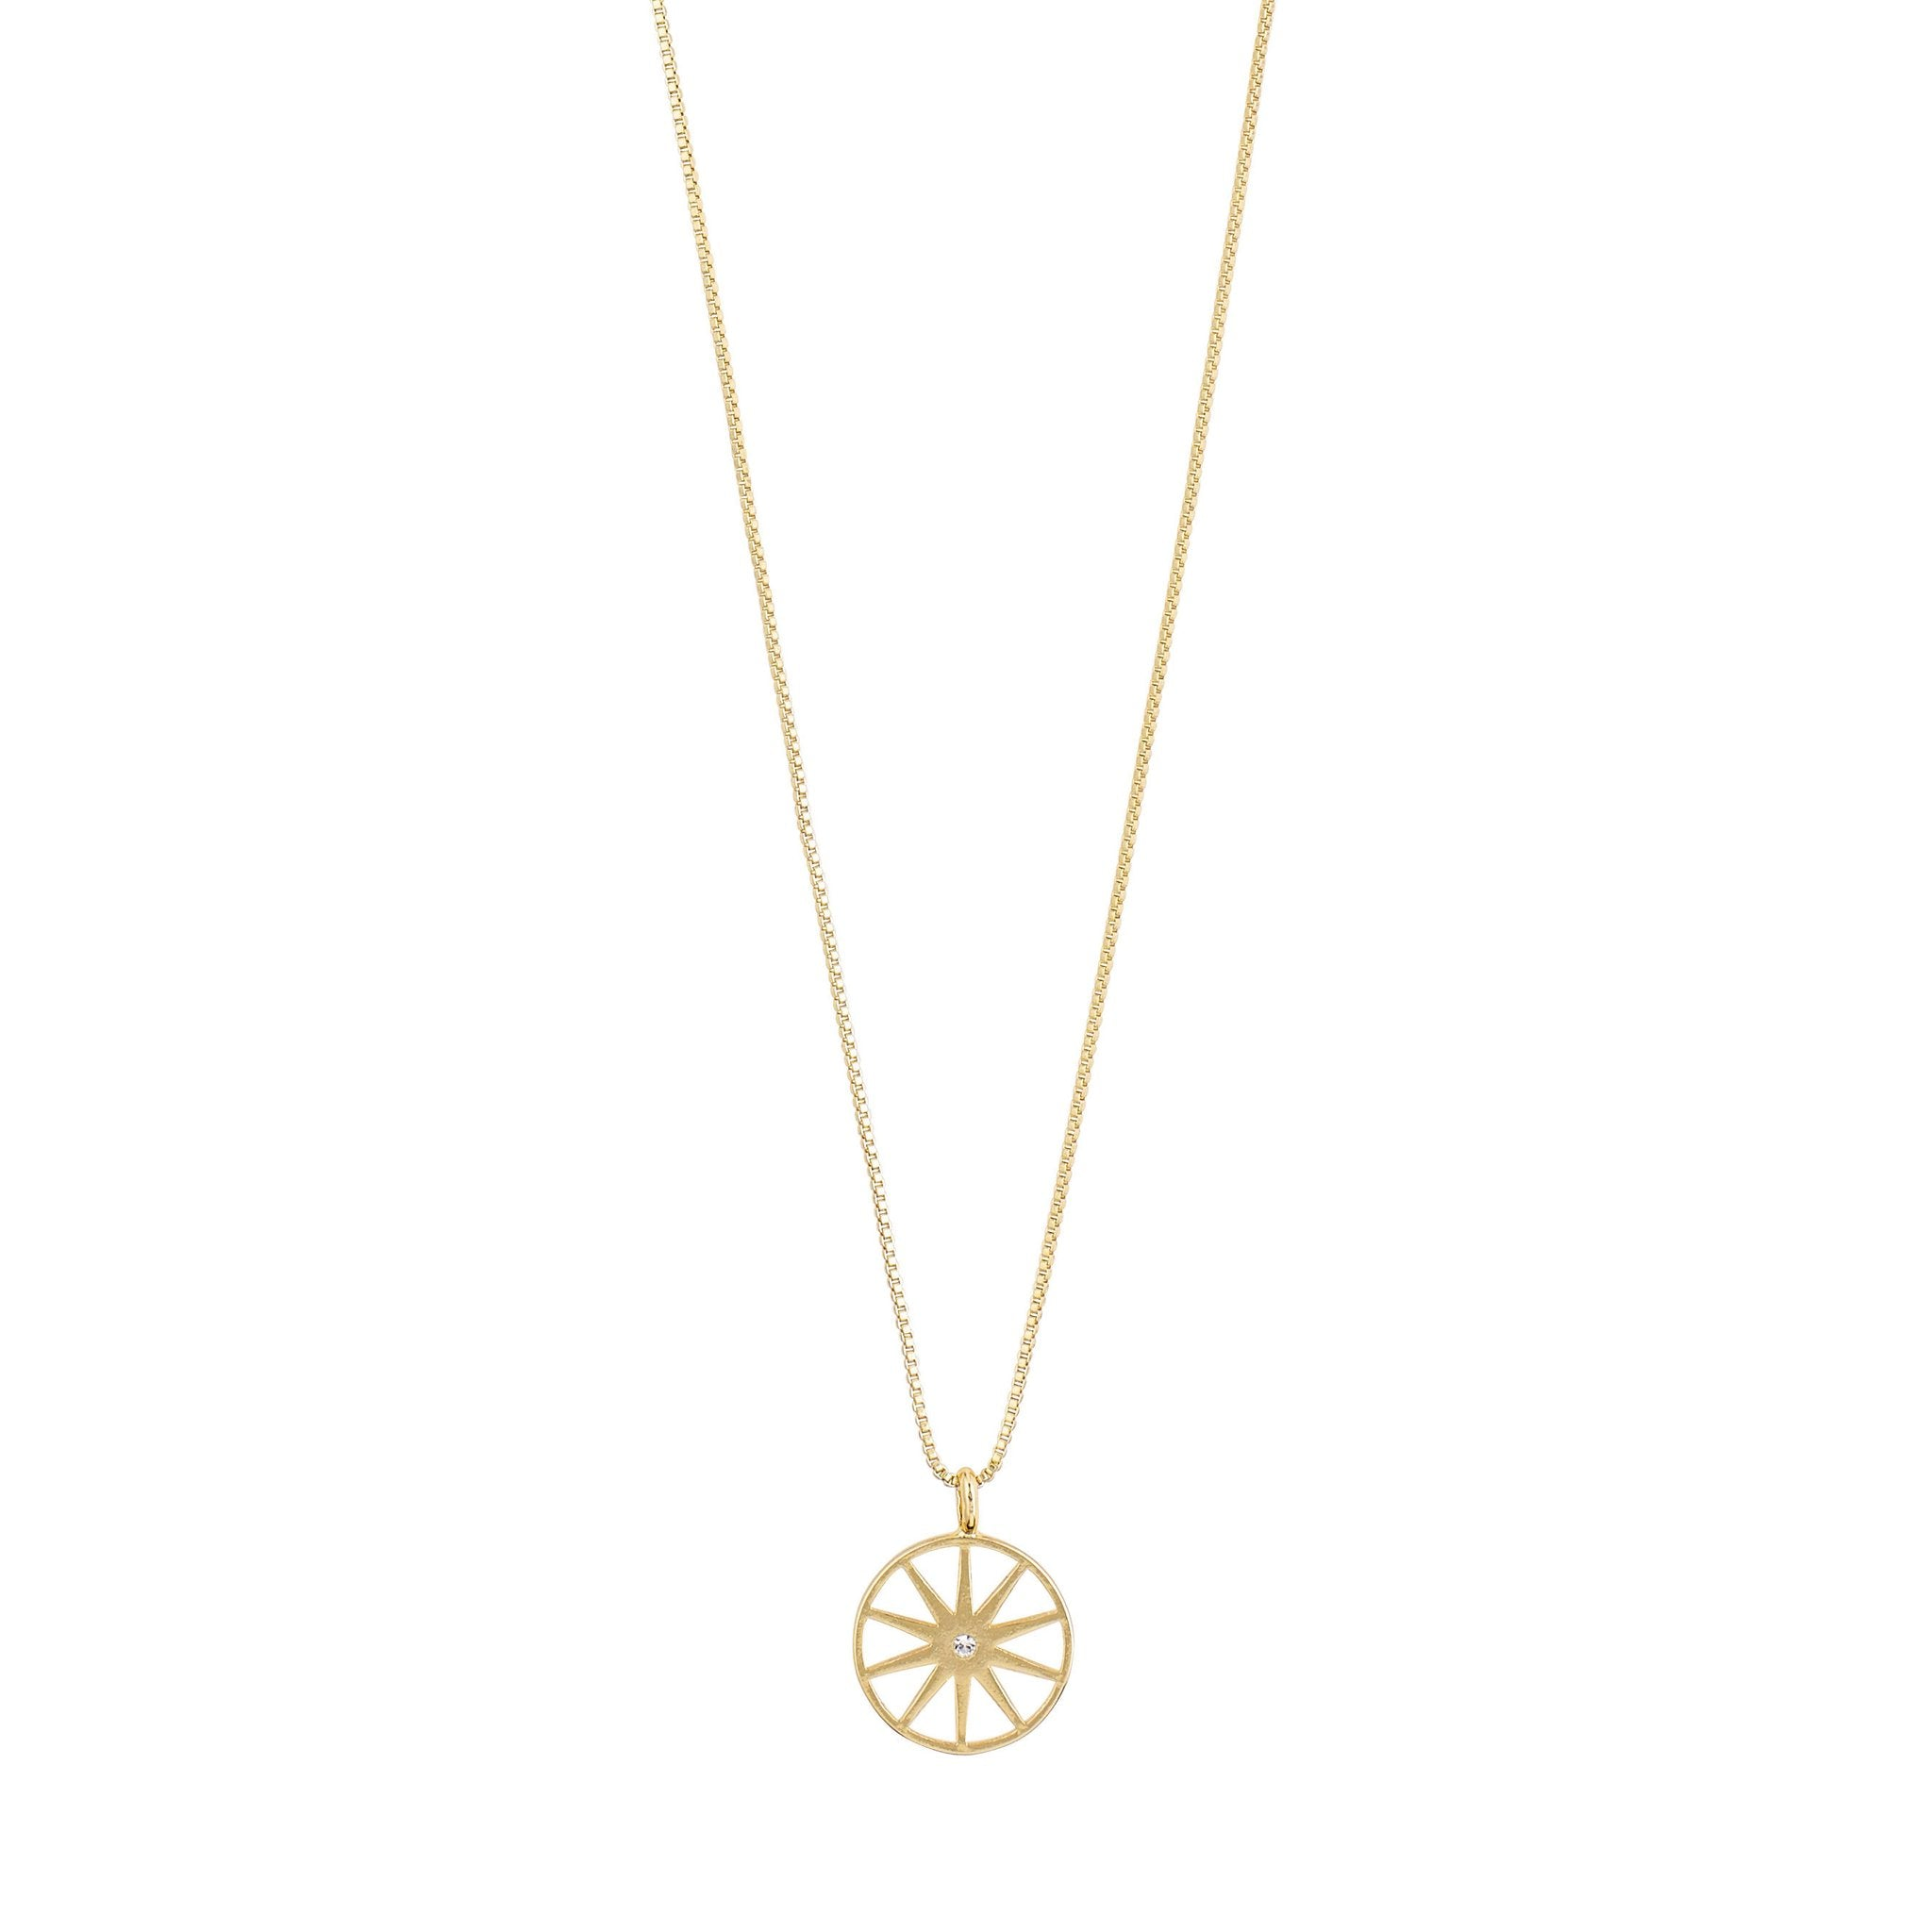 Kaylee Necklace - Gold